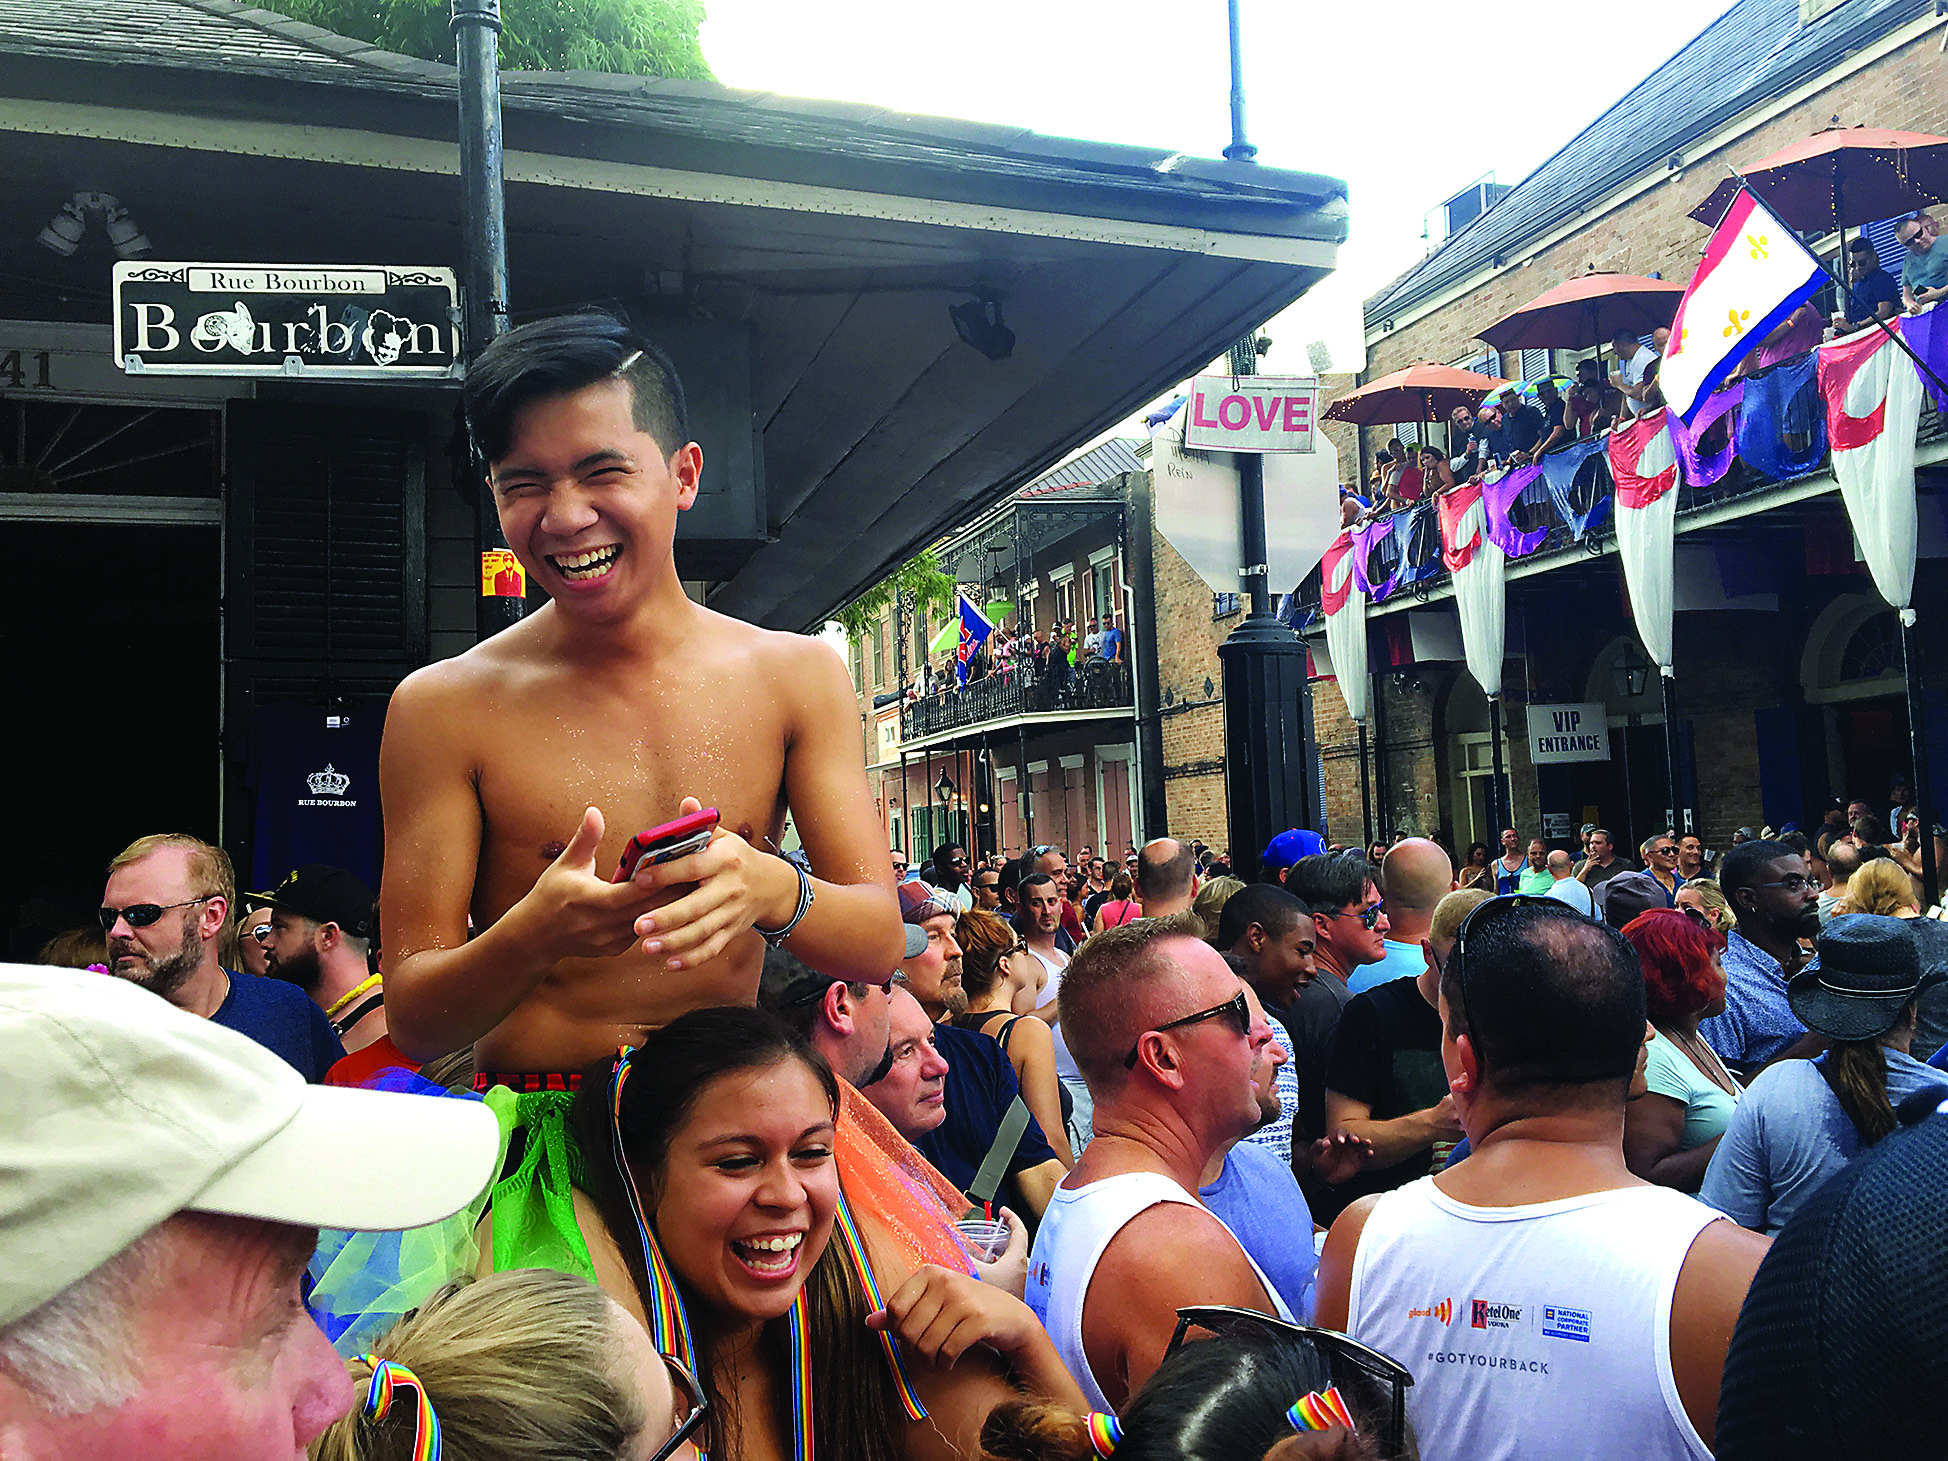 Calvin Tran, music therapy/pre-health sophomore and Samantha Menendez, psych/pre-health junior team up for a better view during the Southern Decadence Walking Parade Sunday afternoon. The weekend rain didn't stop huge crowds from celebrating. Photo credit: Molly Olwig